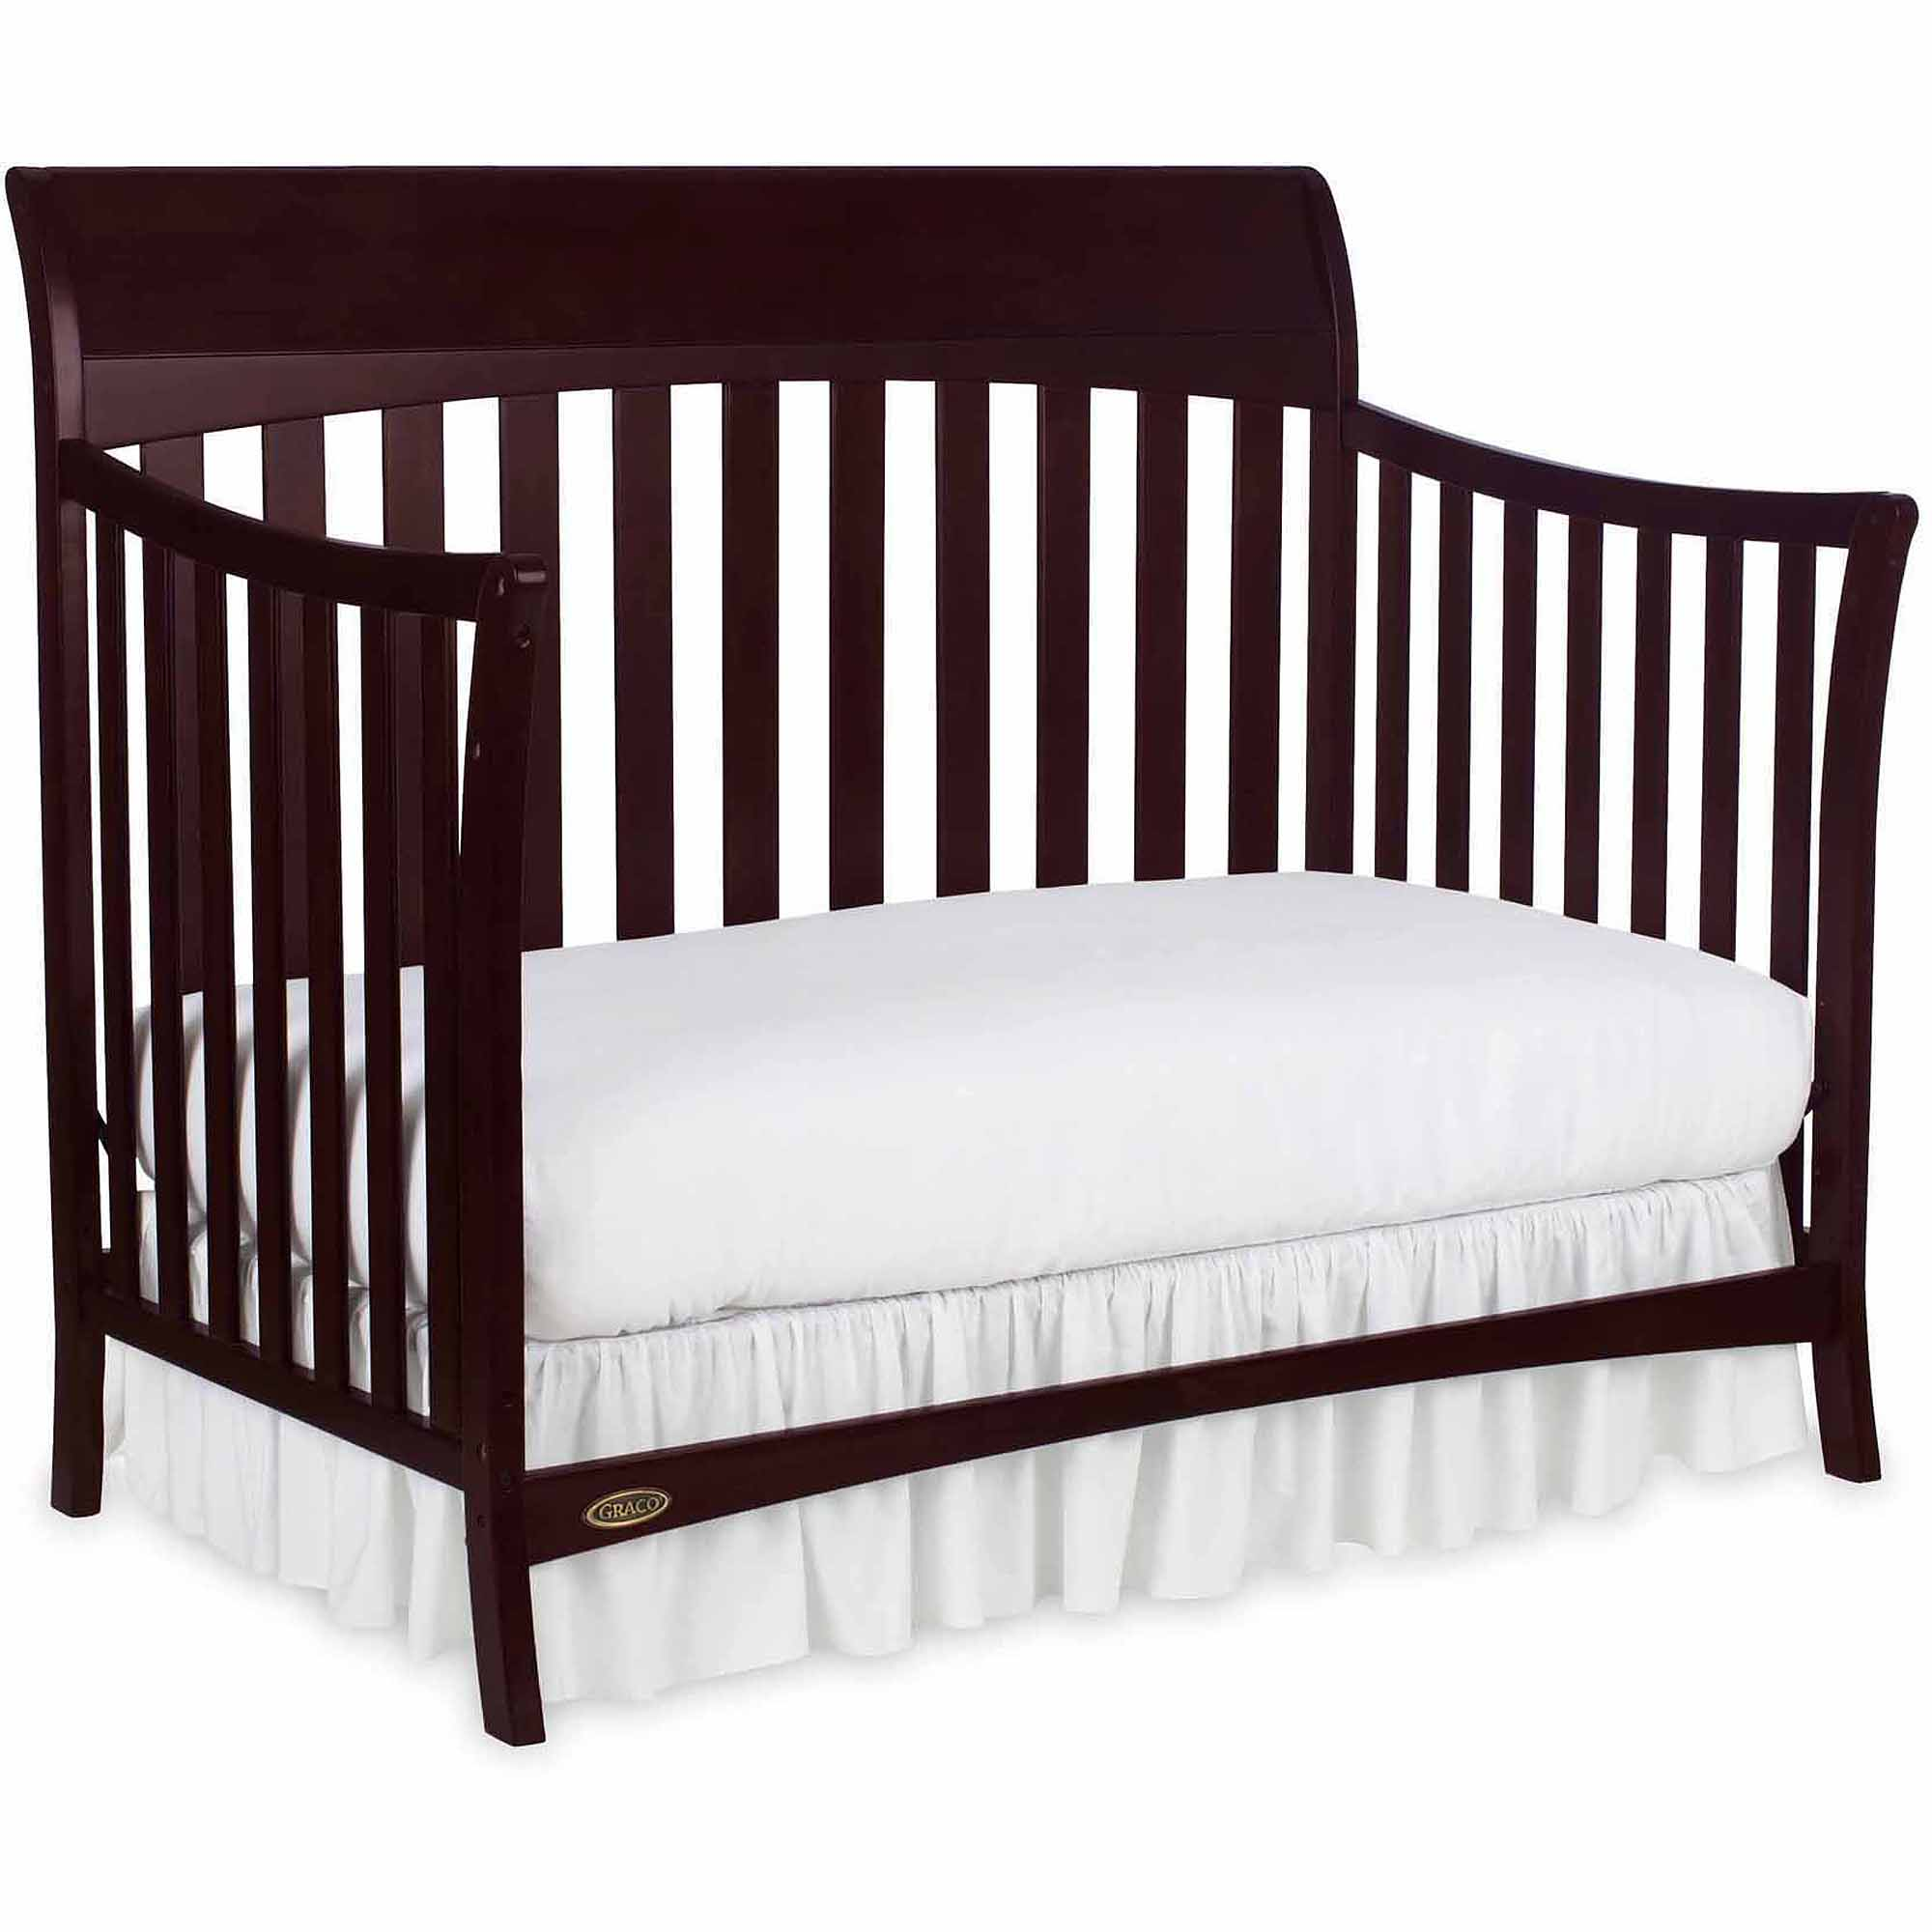 Graco 5 In 1 Convertible Crib, Toddler Bed, Daybed